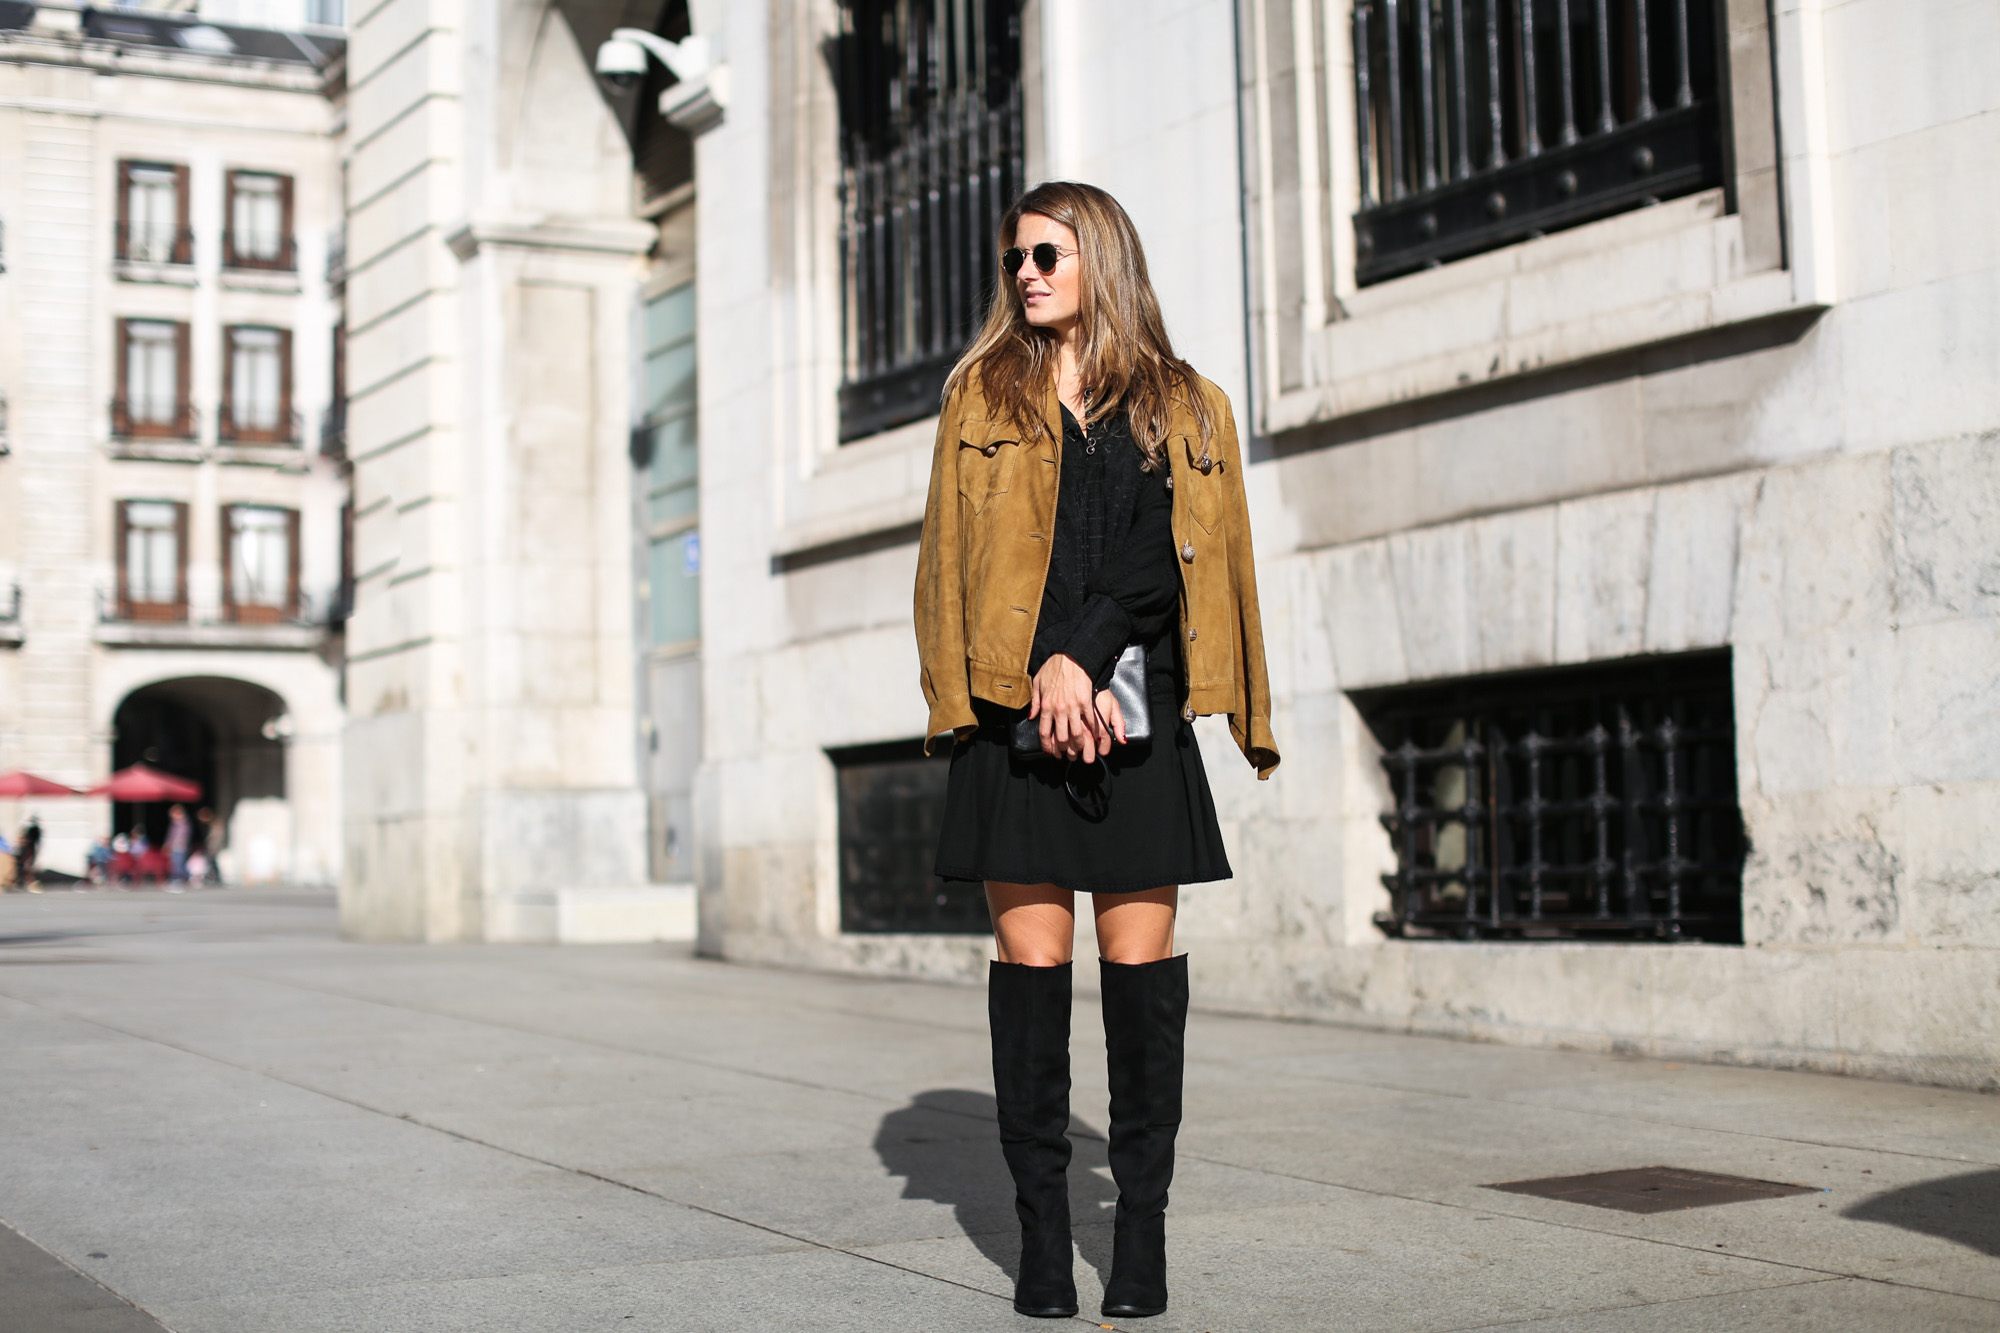 Clochet_streetstyle_suede_ankle_high_boots_boho_minidress-5